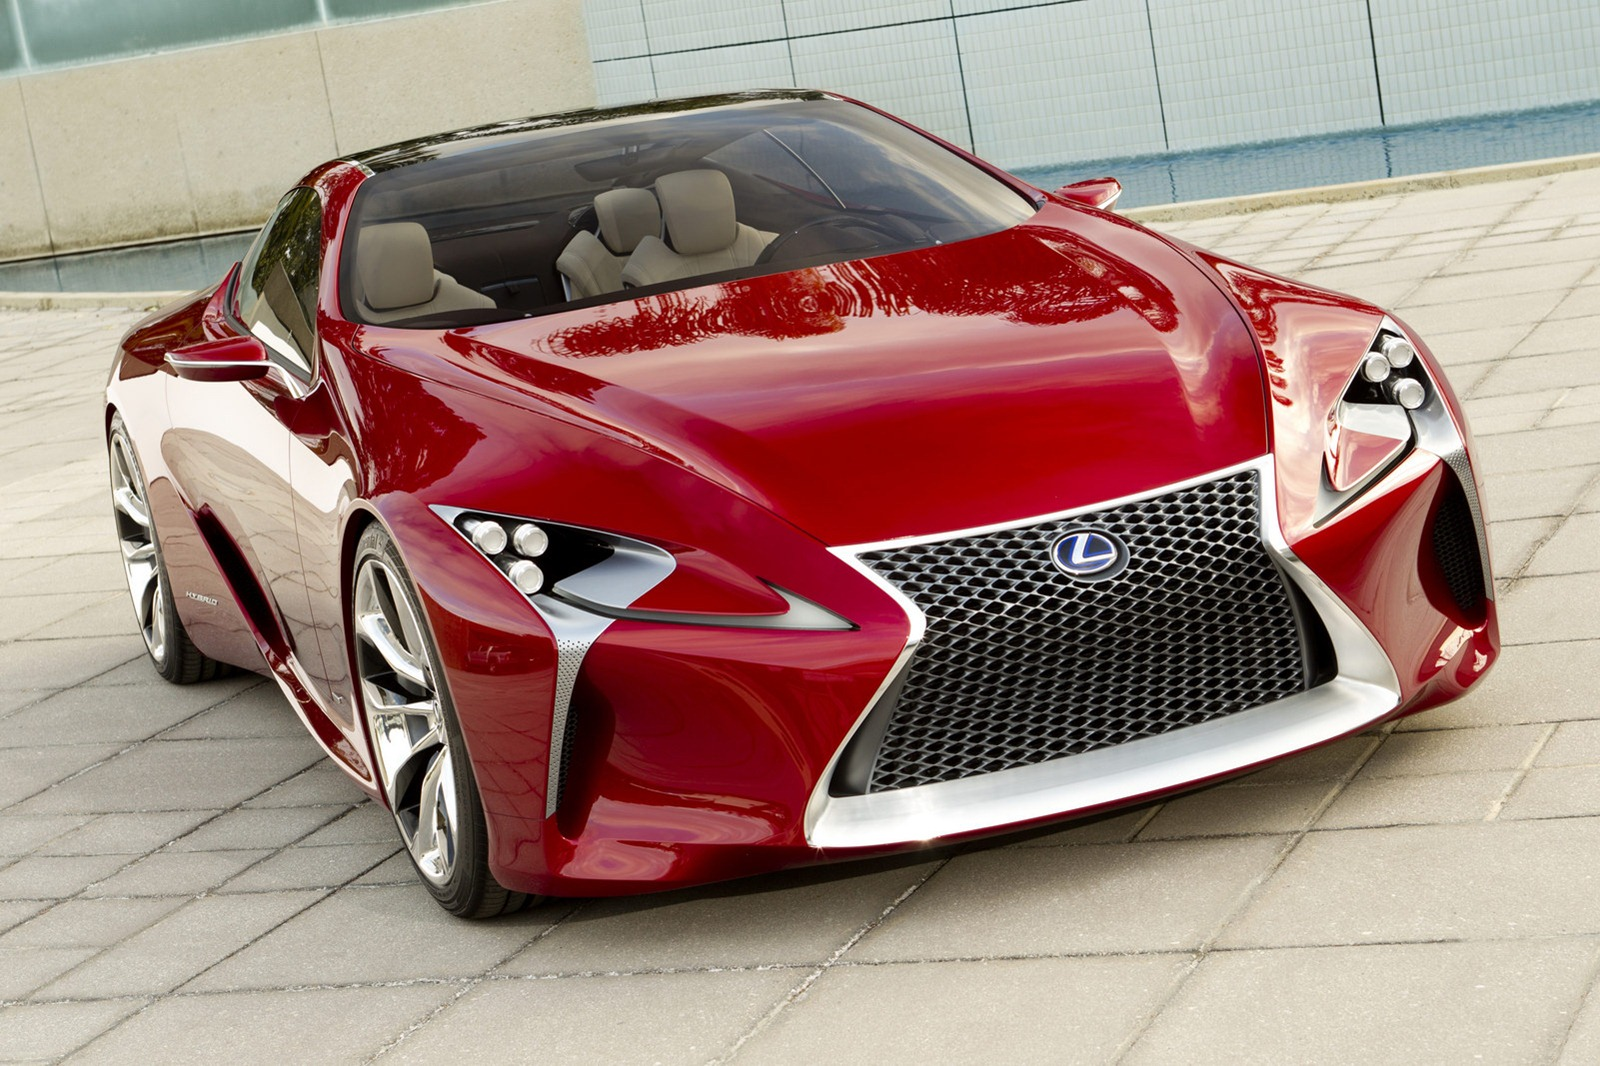 Lexus lf lc hybrid supercar concept Planning New Concept For Paris Wallpapers Desktop Download